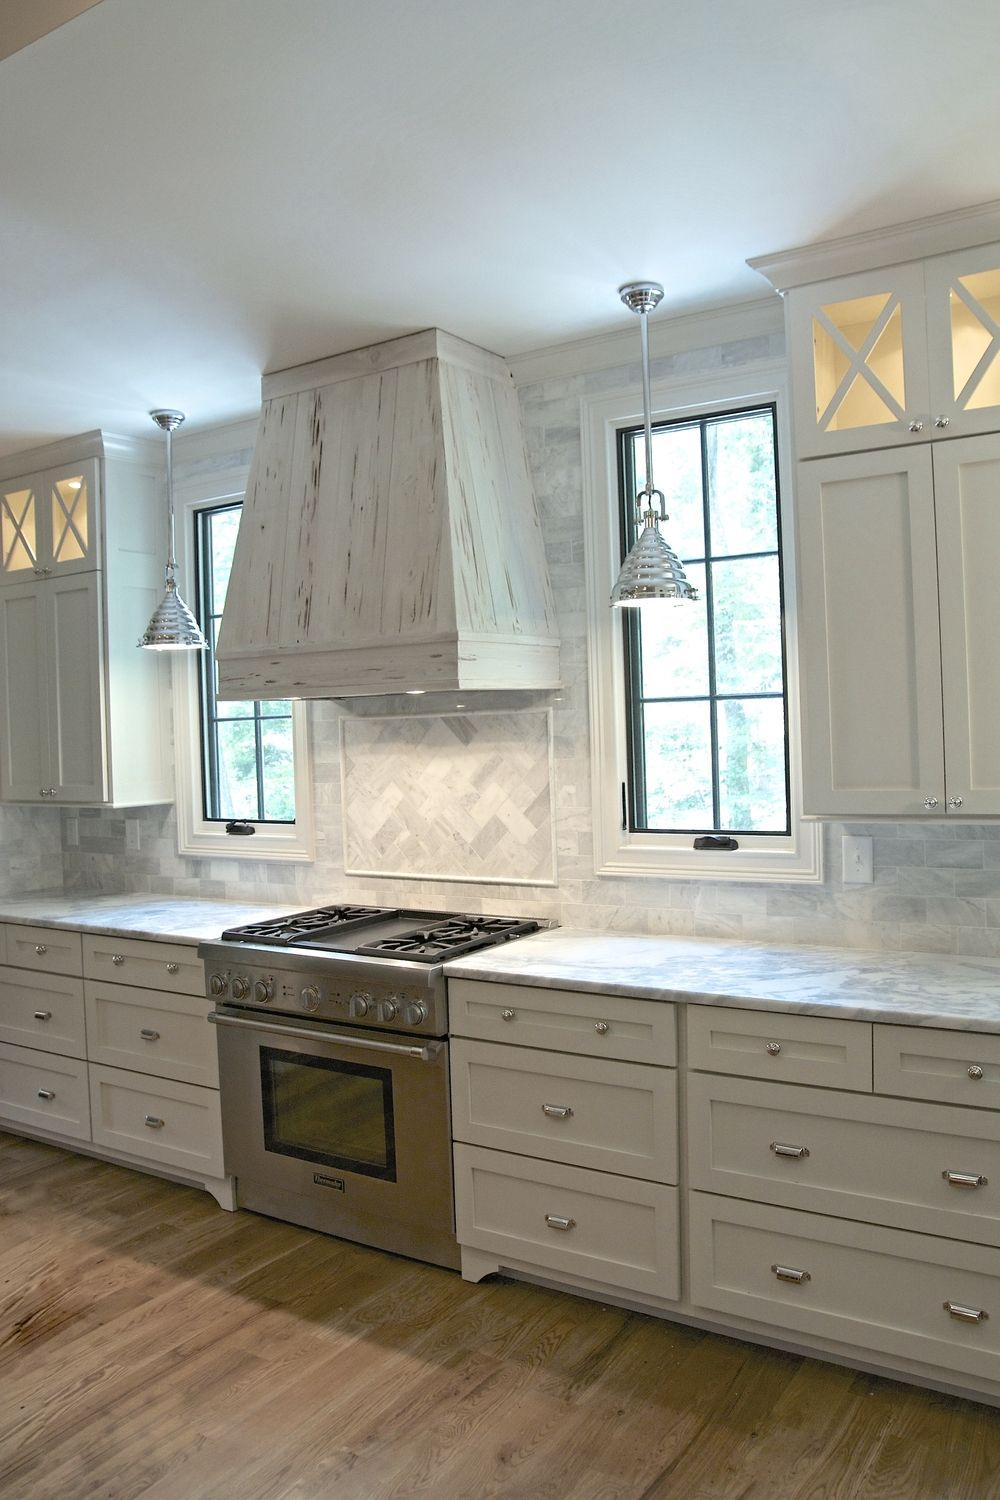 White Shaker Cabinets Full Overlay Cabinets Bin Pulls Polished Nickel Thermador Range Pecky Cypress Kitchen Window Design Timeless Kitchen Kitchen Remodel